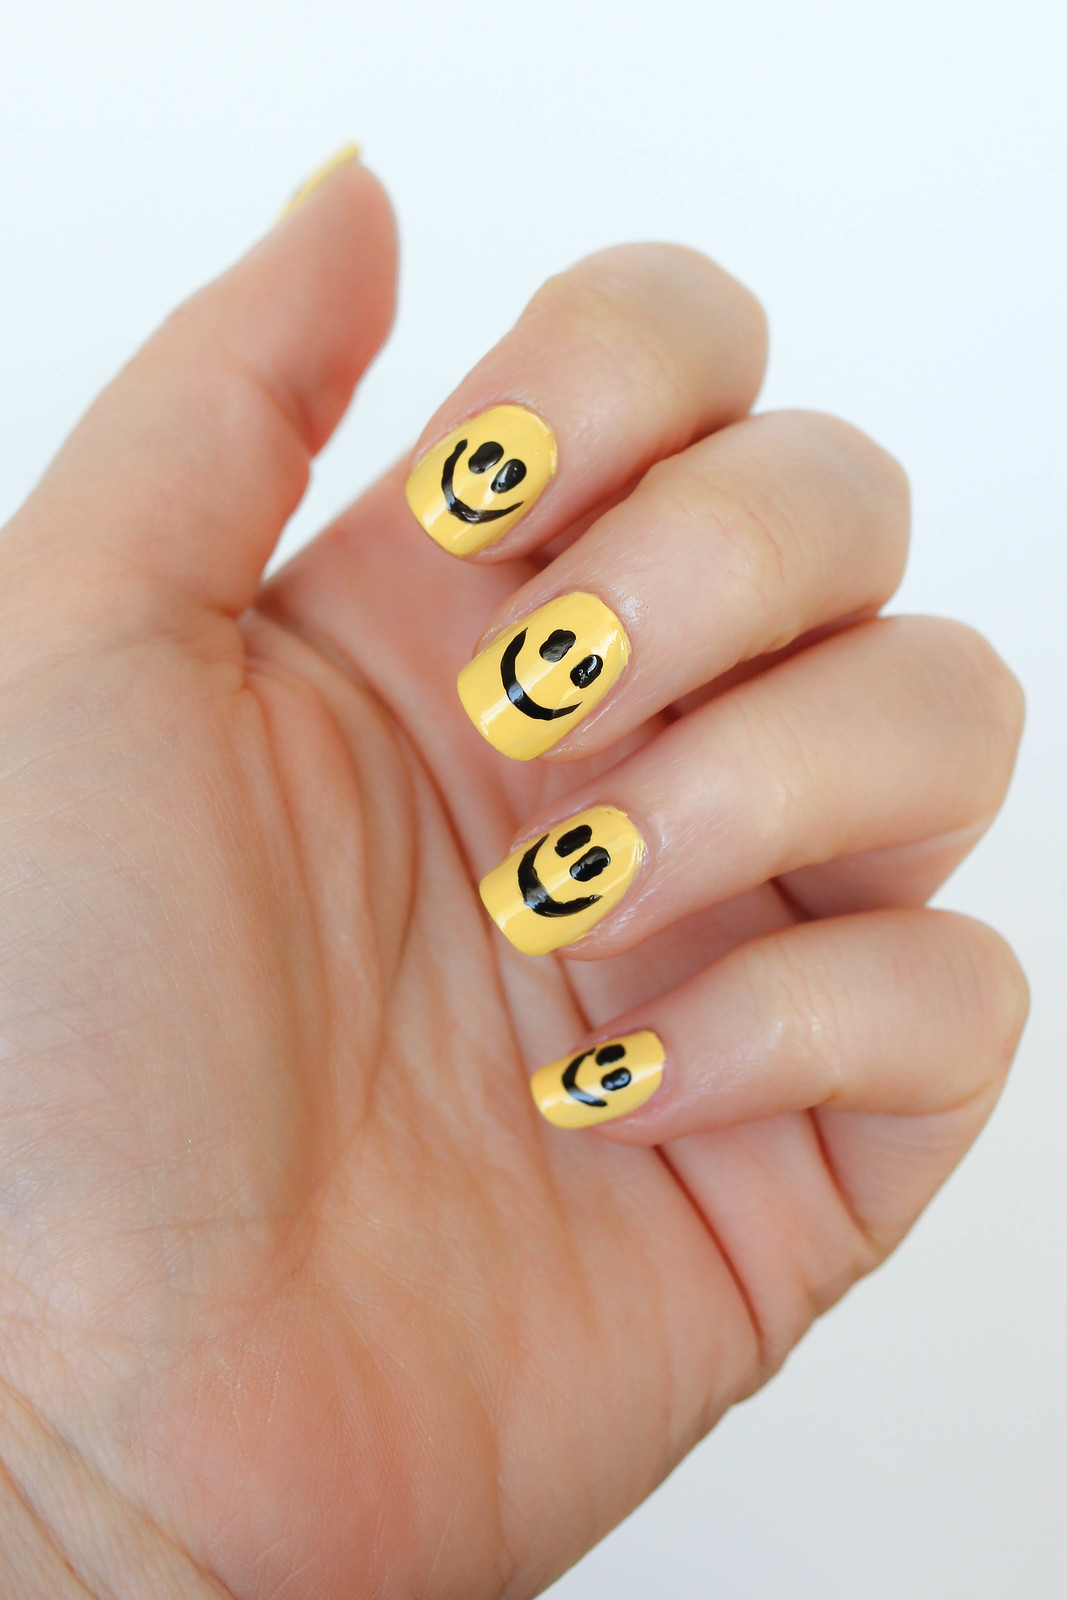 Smiley Face Manicure Nails 3 Ways to Celebrate World Smile Day